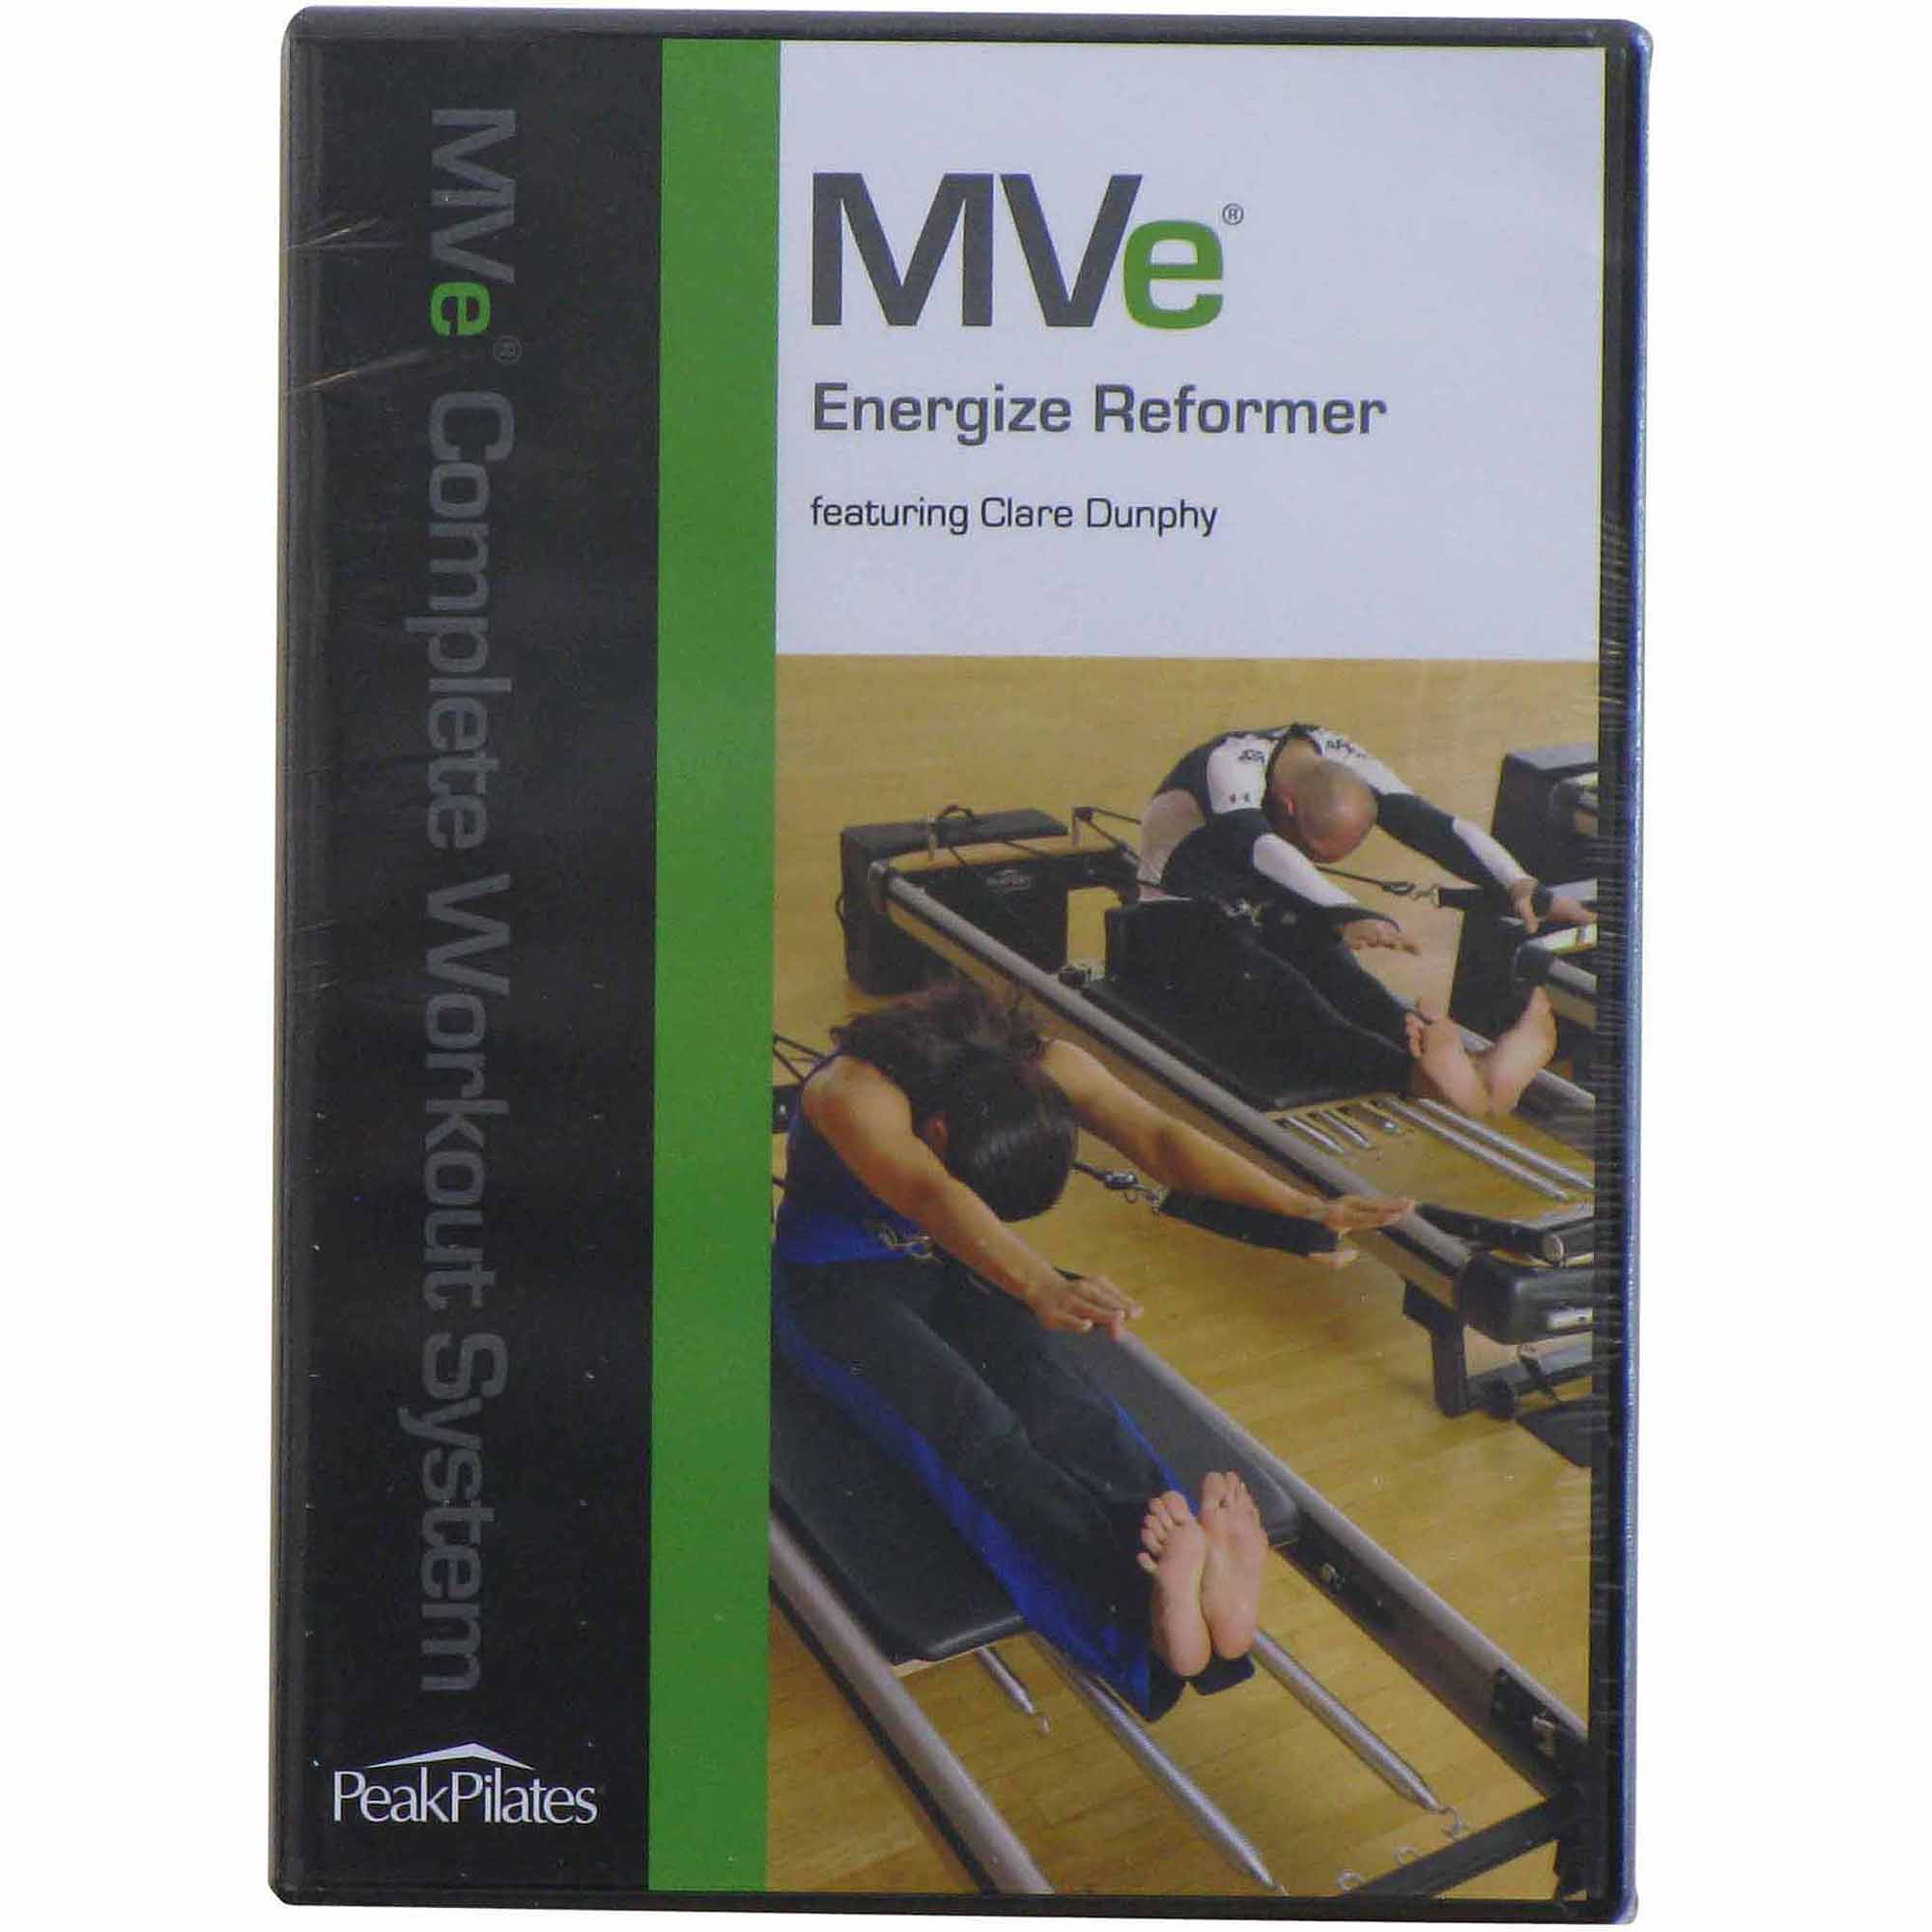 Peak Pilates MVe Energize Reformer Workout DVD